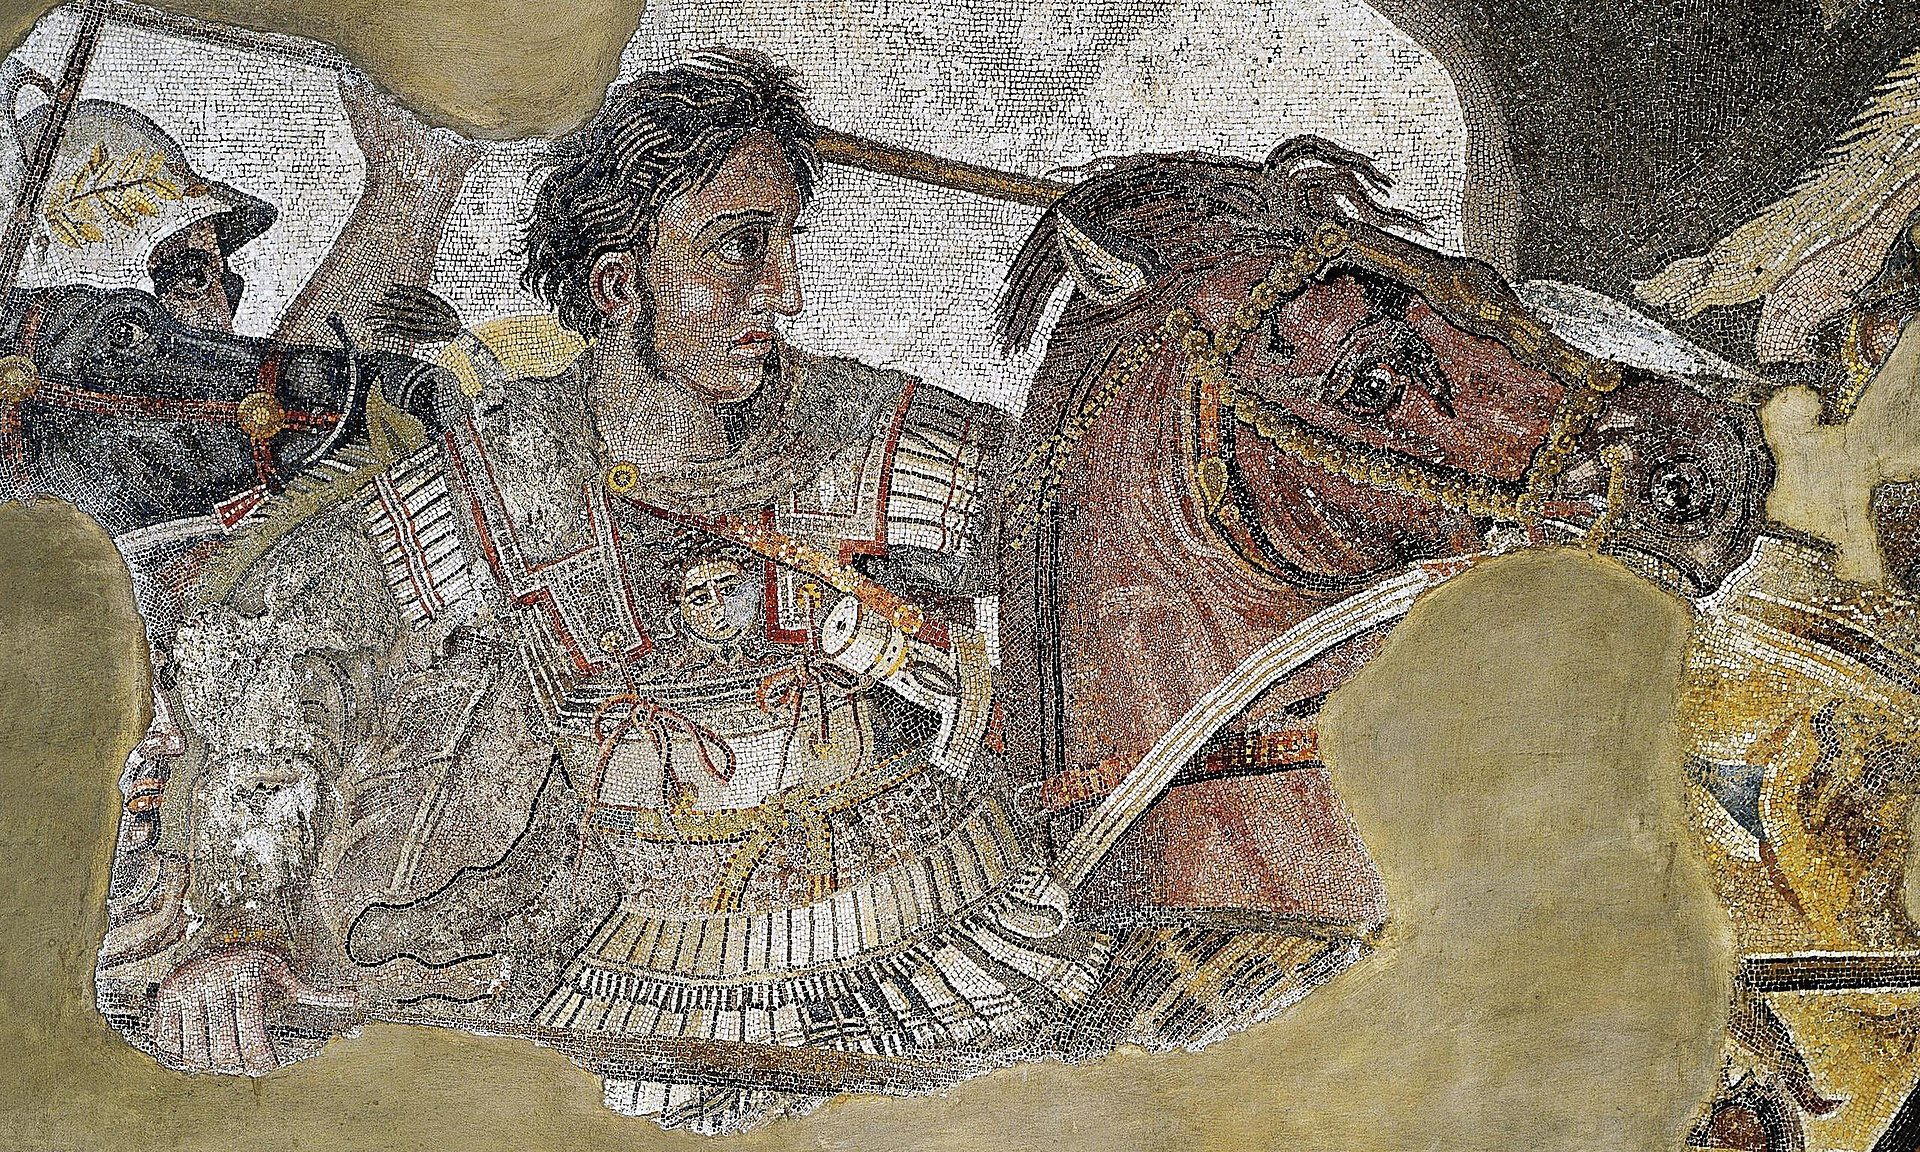 https://upload.wikimedia.org/wikipedia/commons/thumb/e/e1/Alexander_the_Great_mosaic.jpg/1920px-Alexander_the_Great_mosaic.jpg